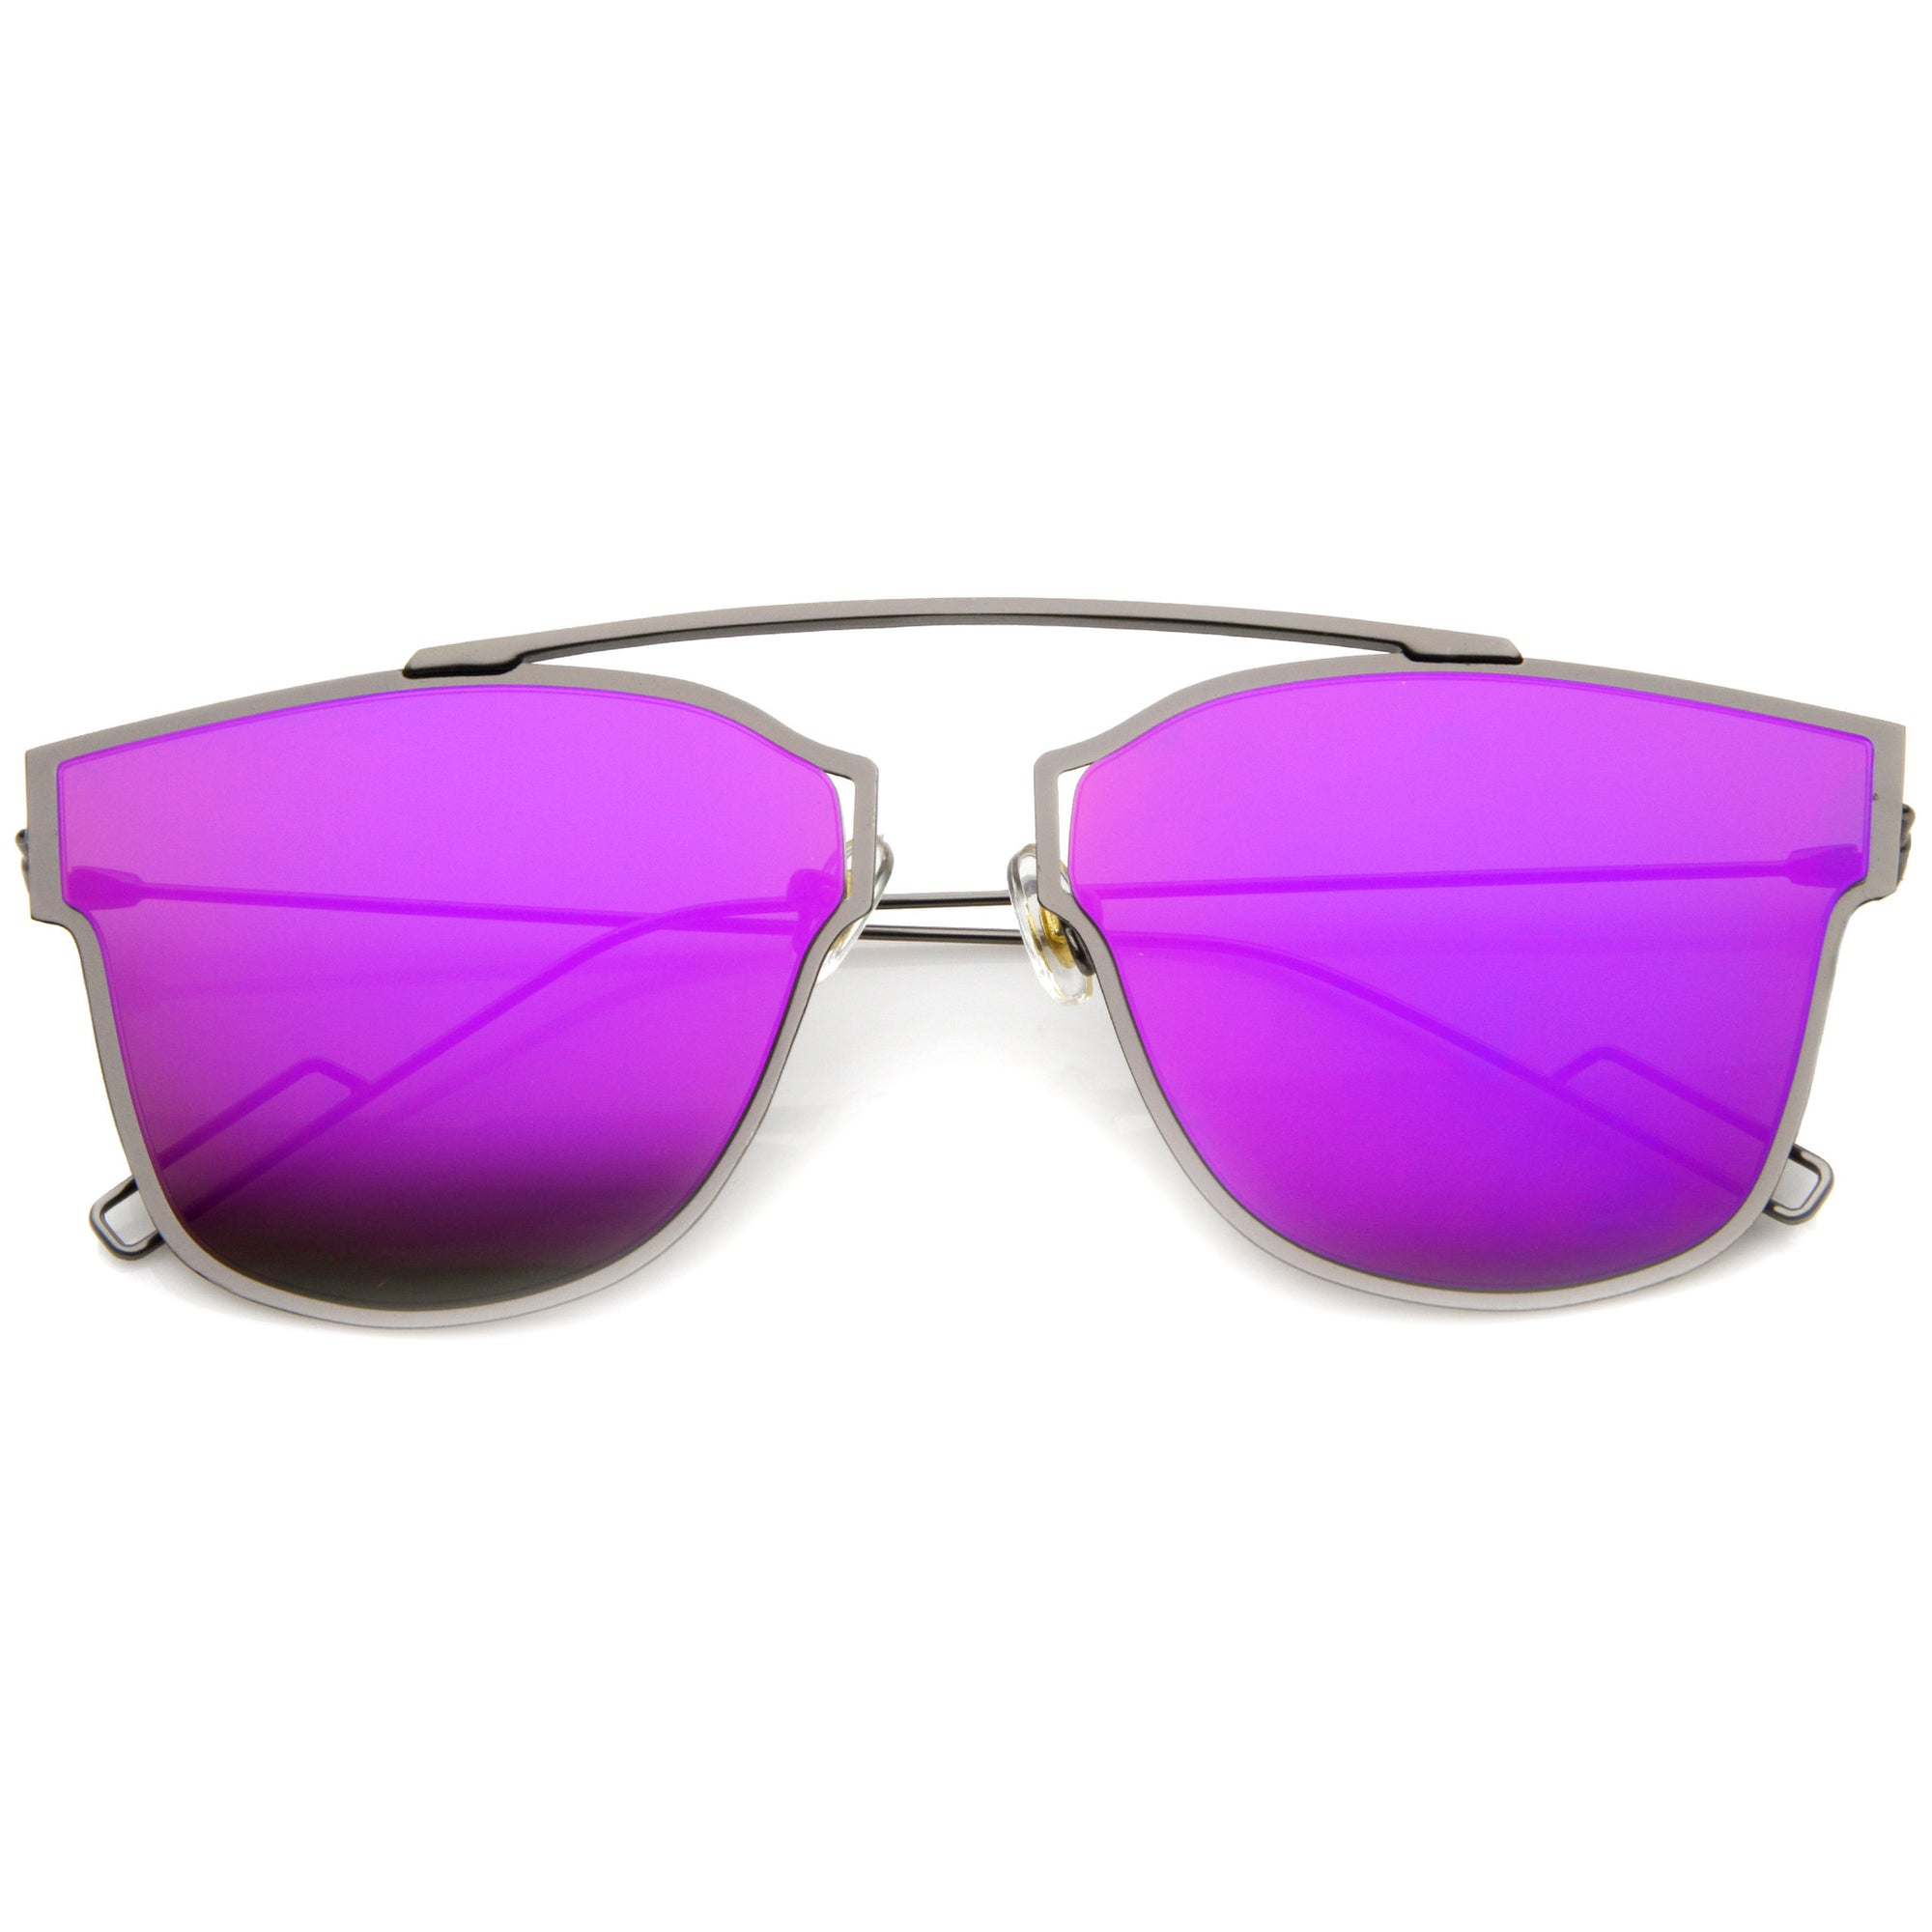 dcd49e4292 Modern Flash Mirror Flat Lens Thin Wire Frame Sunglasses A384 · Gunmetal  Purple Mirror